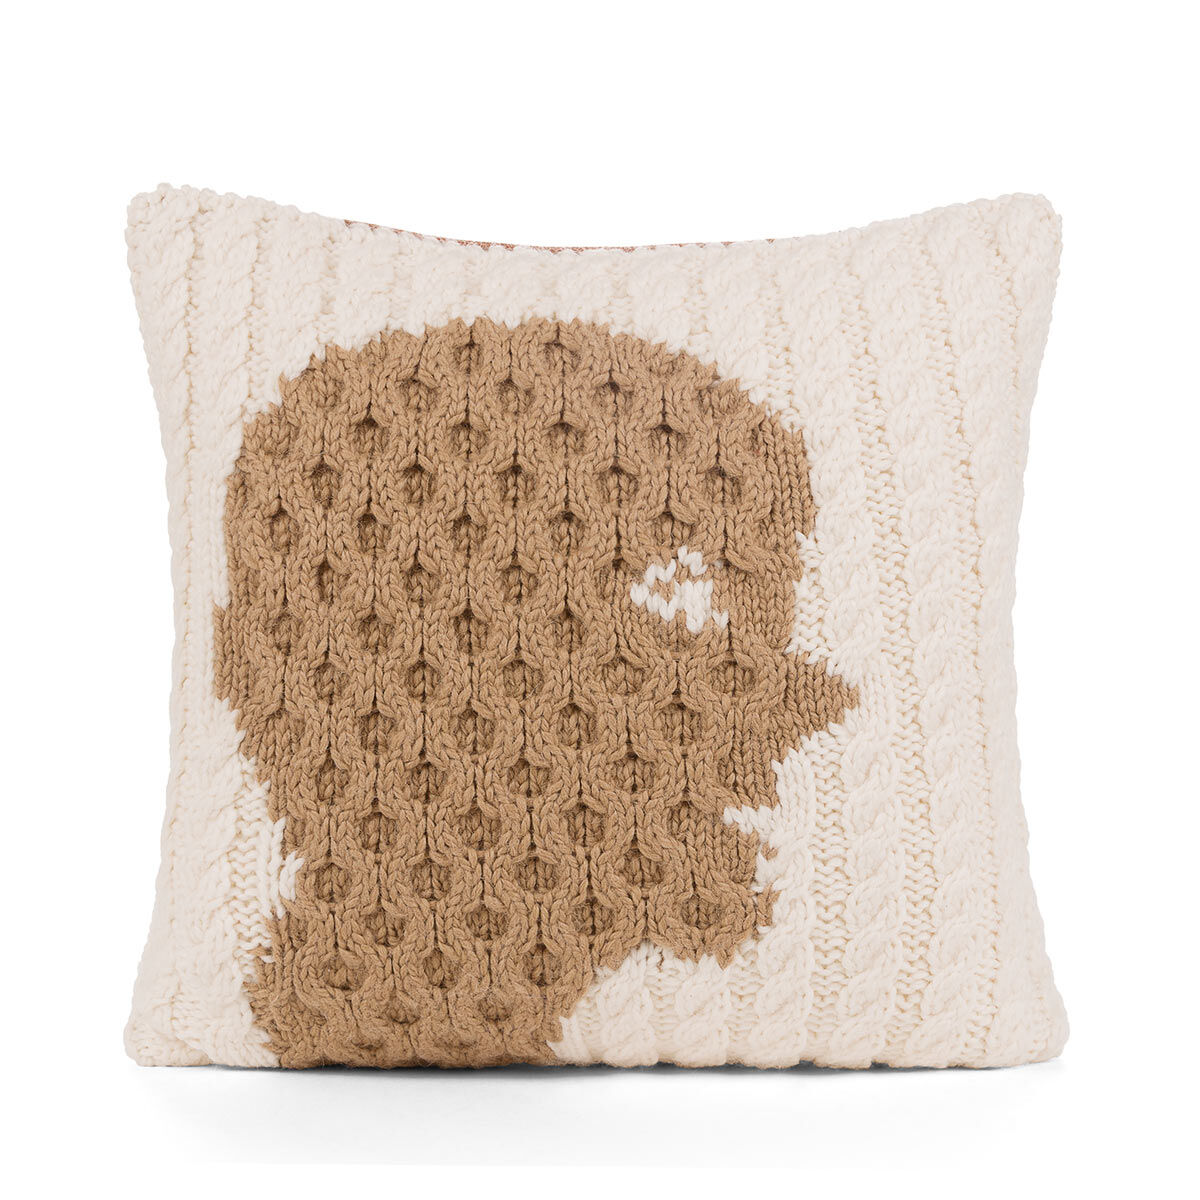 LOEWE Hand Knitted Cushion 5 40X40 White/Camel all